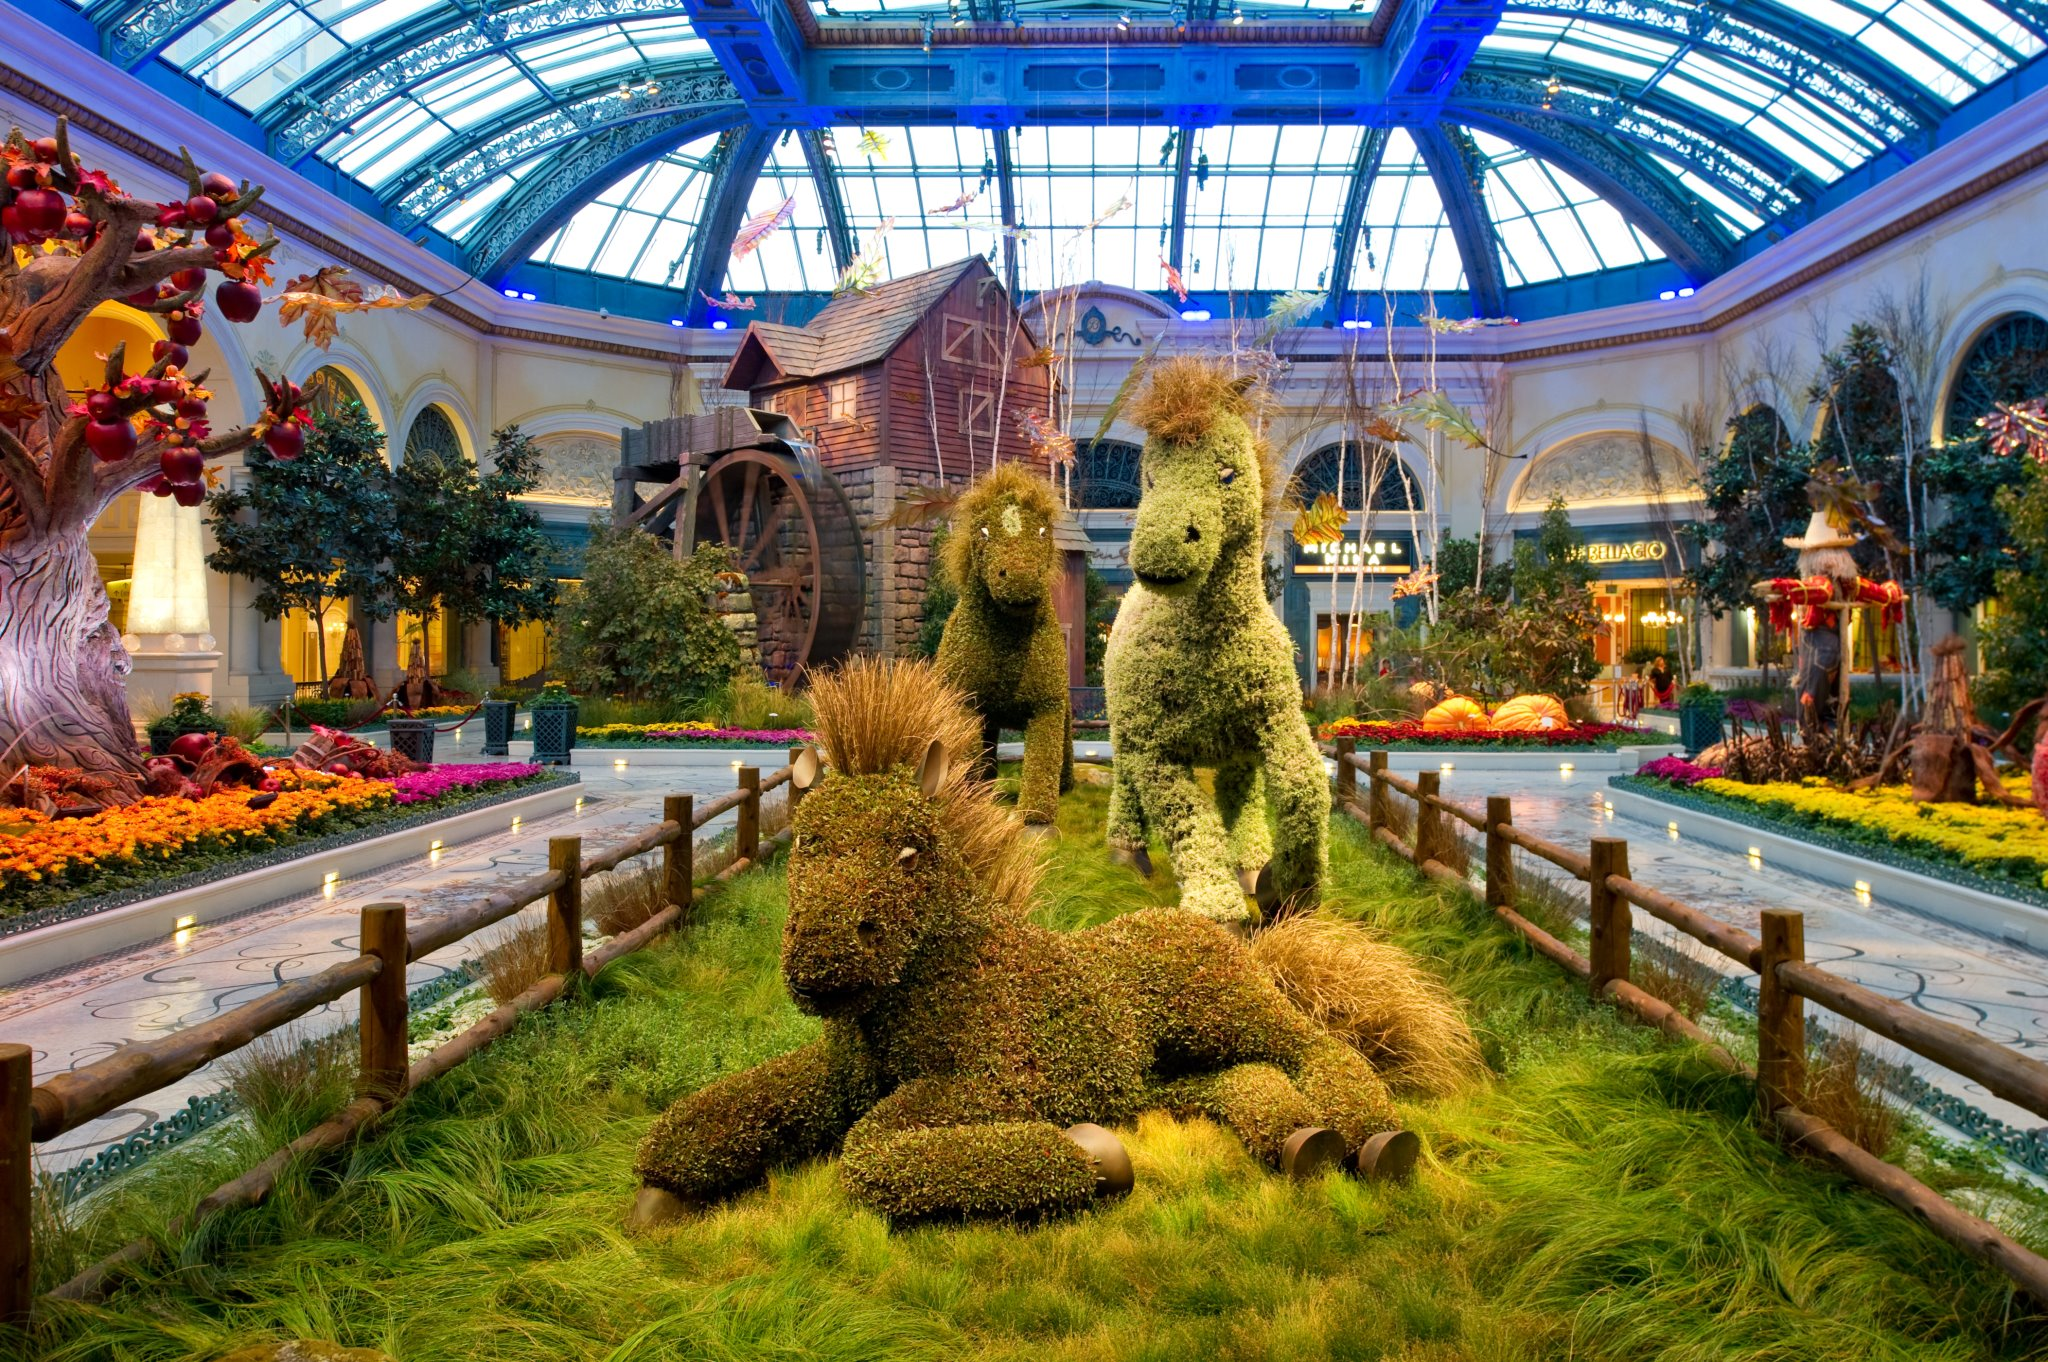 Travel Through A Lens: Bellagio Conservatory & Gardens | Galavantier